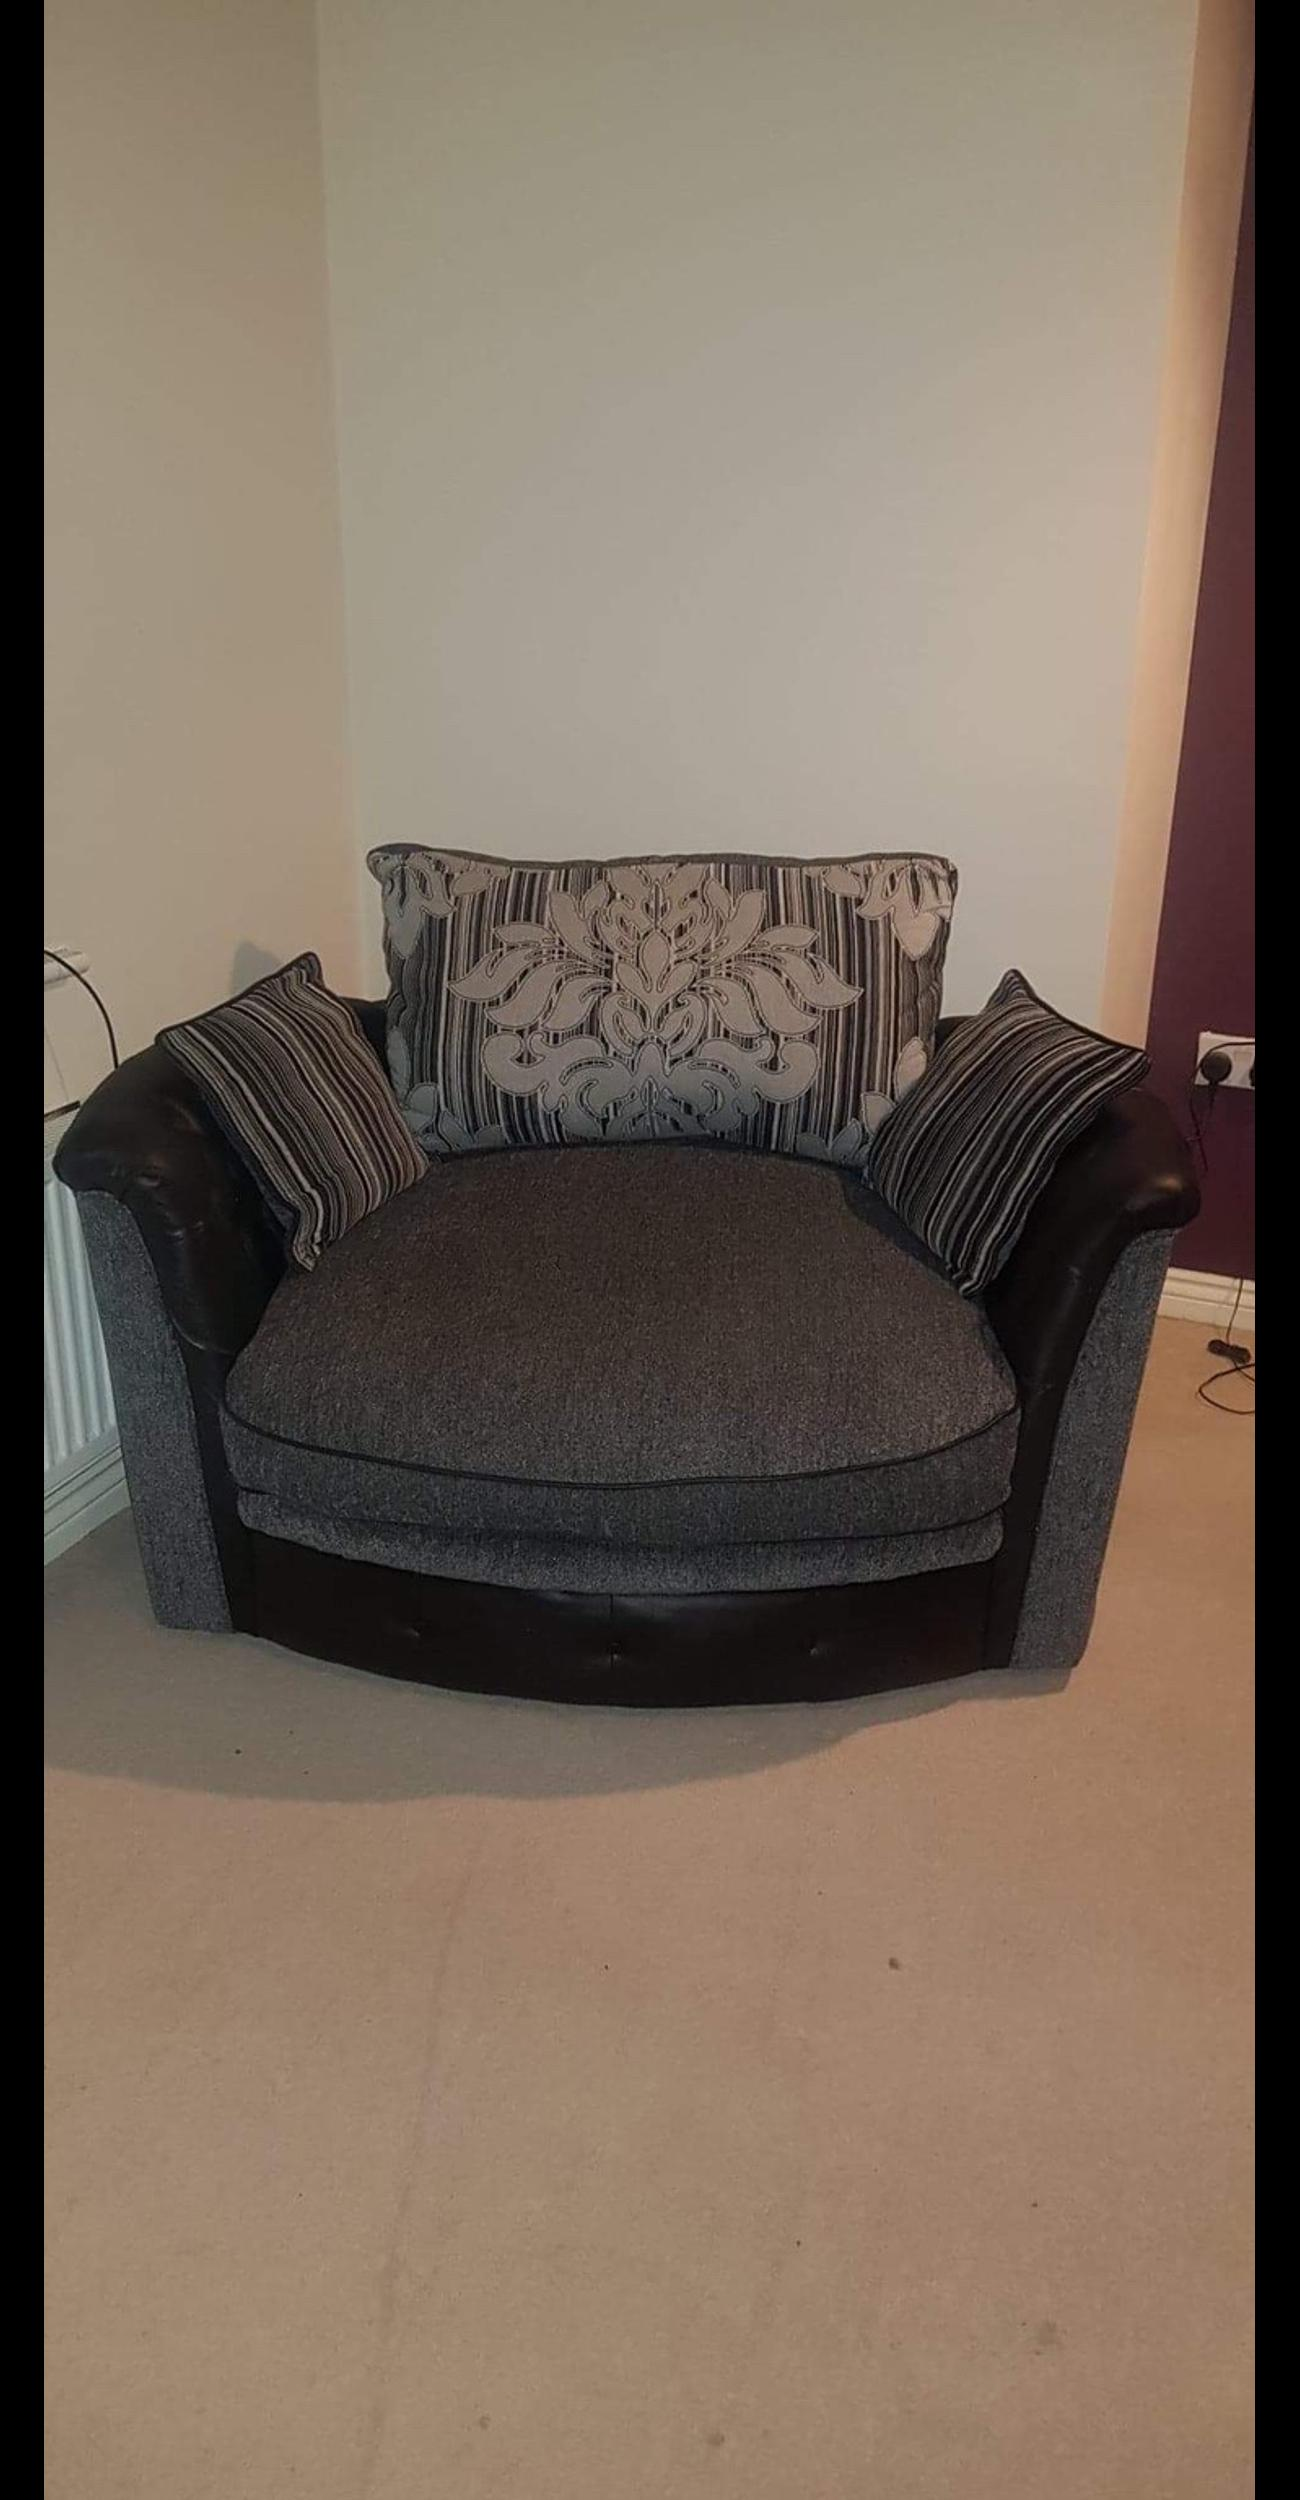 Swivel cuddle chair offers accepted in DE24 Derby for £100 ...